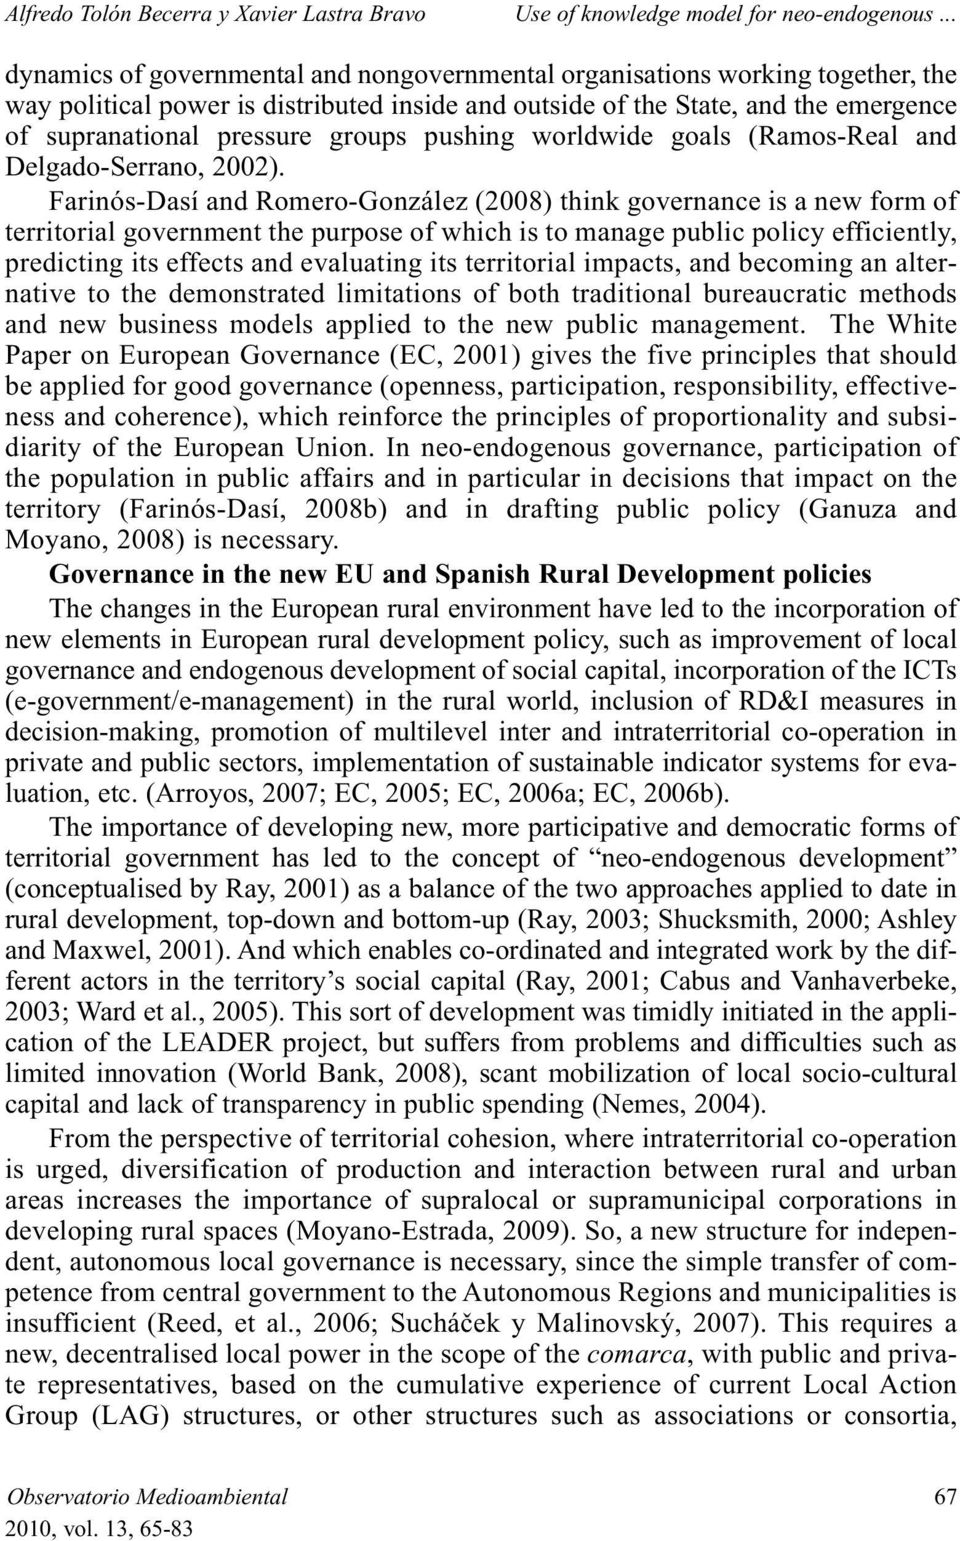 Farinós-Dasí and Romero-González (2008) think governance is a new form of territorial government the purpose of which is to manage public policy efficiently, predicting its effects and evaluating its